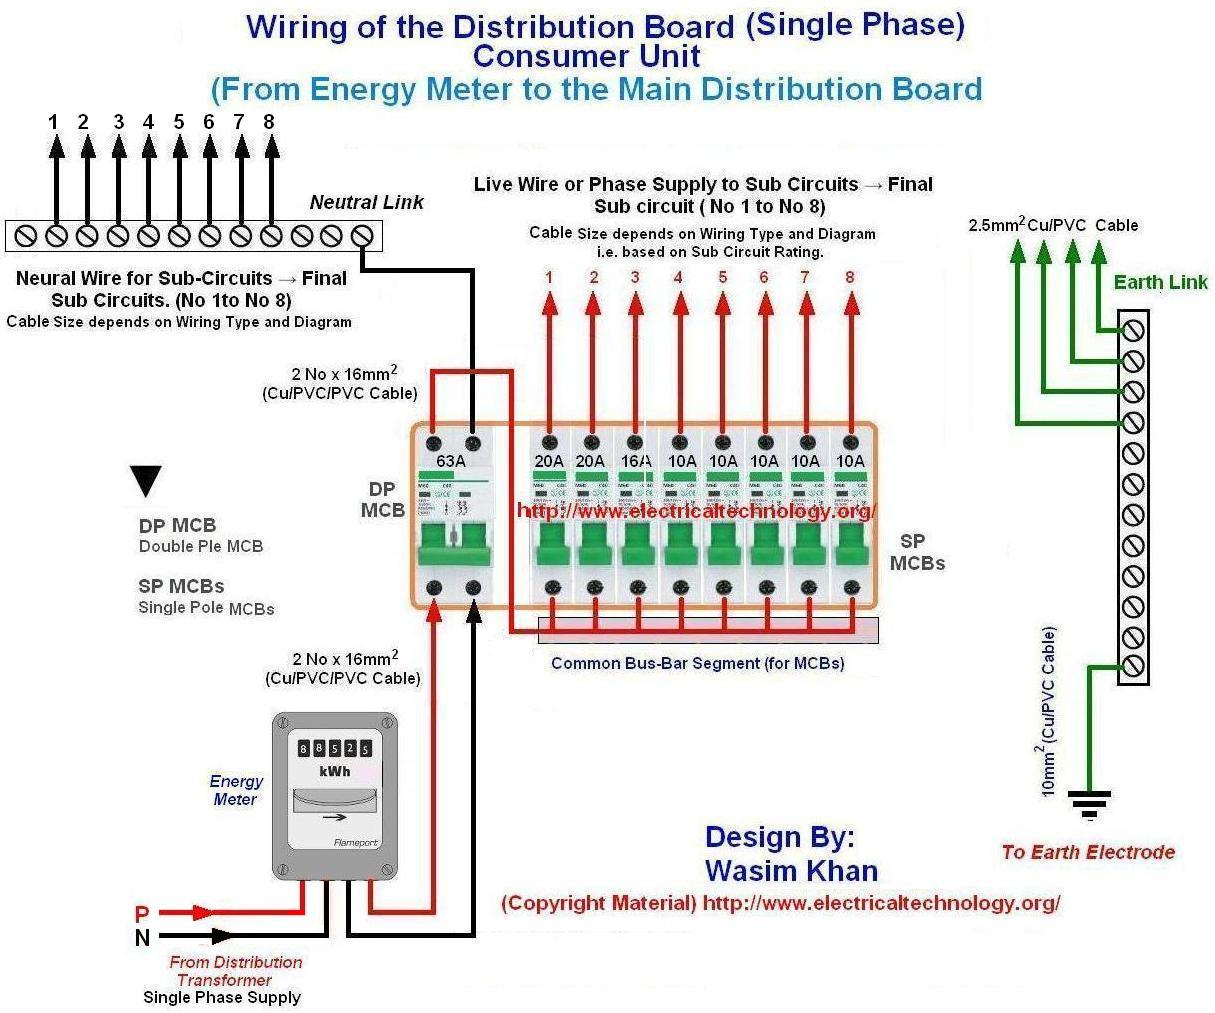 Electric Blower Motor Wiring Diagrams together with Solar Power With Battery Backup Systems as well Vav Control Systems Diagrams in addition Distribution Board Wiring Diagram further How Do Air Conditioning Works Diagrams. on hvac diagrams for dummies